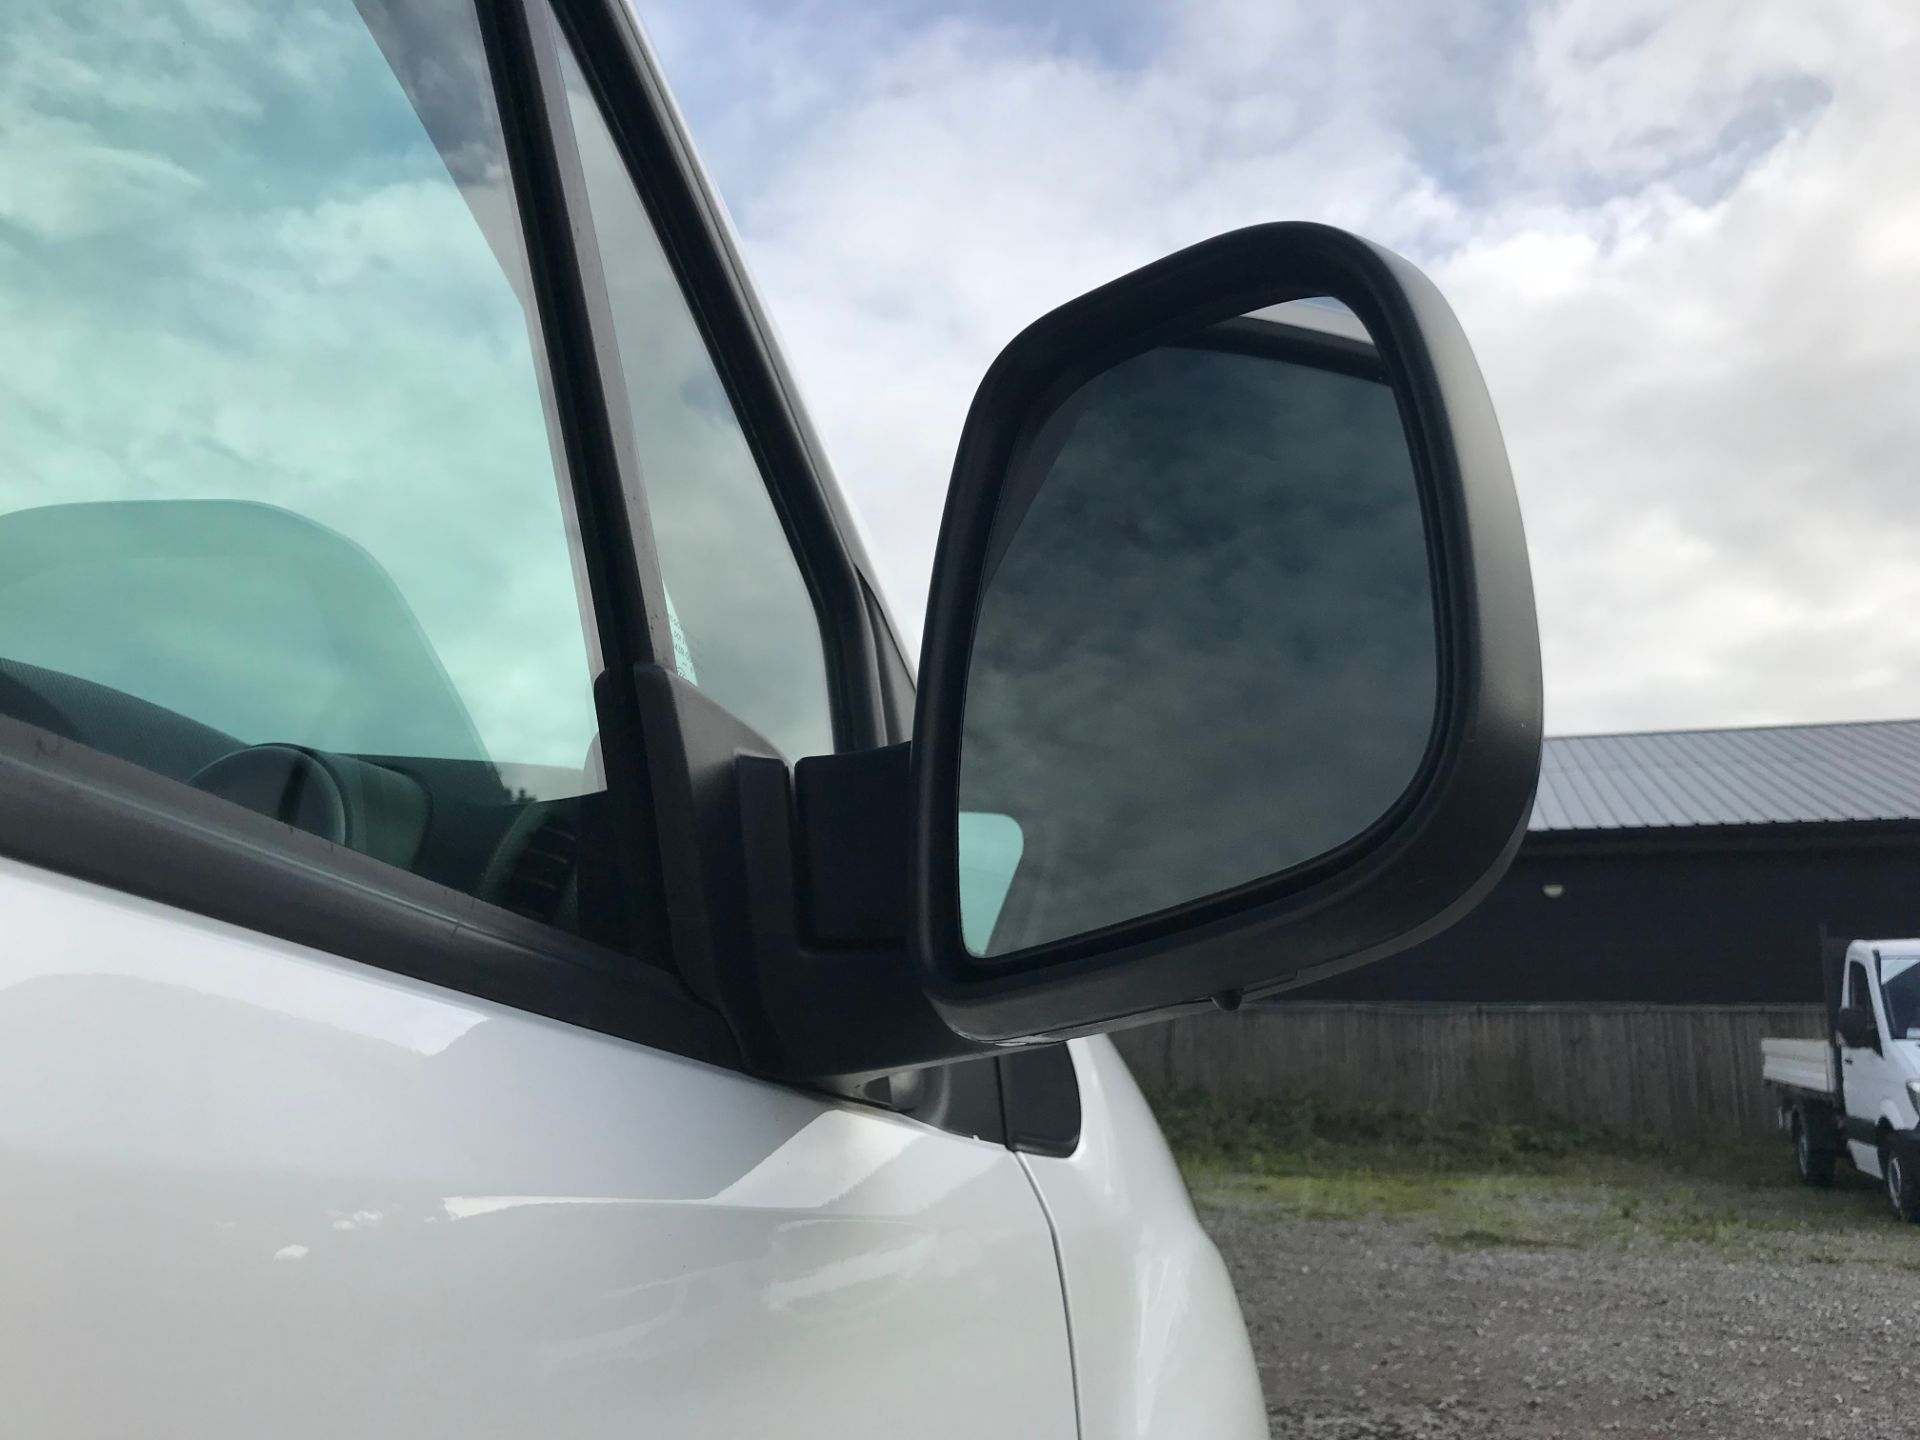 2018 Peugeot Partner 850 1.6 Bluehdi 100 Professional Van [Non Ss]*Restricted to 69MPH* (NV18PXR) Image 13